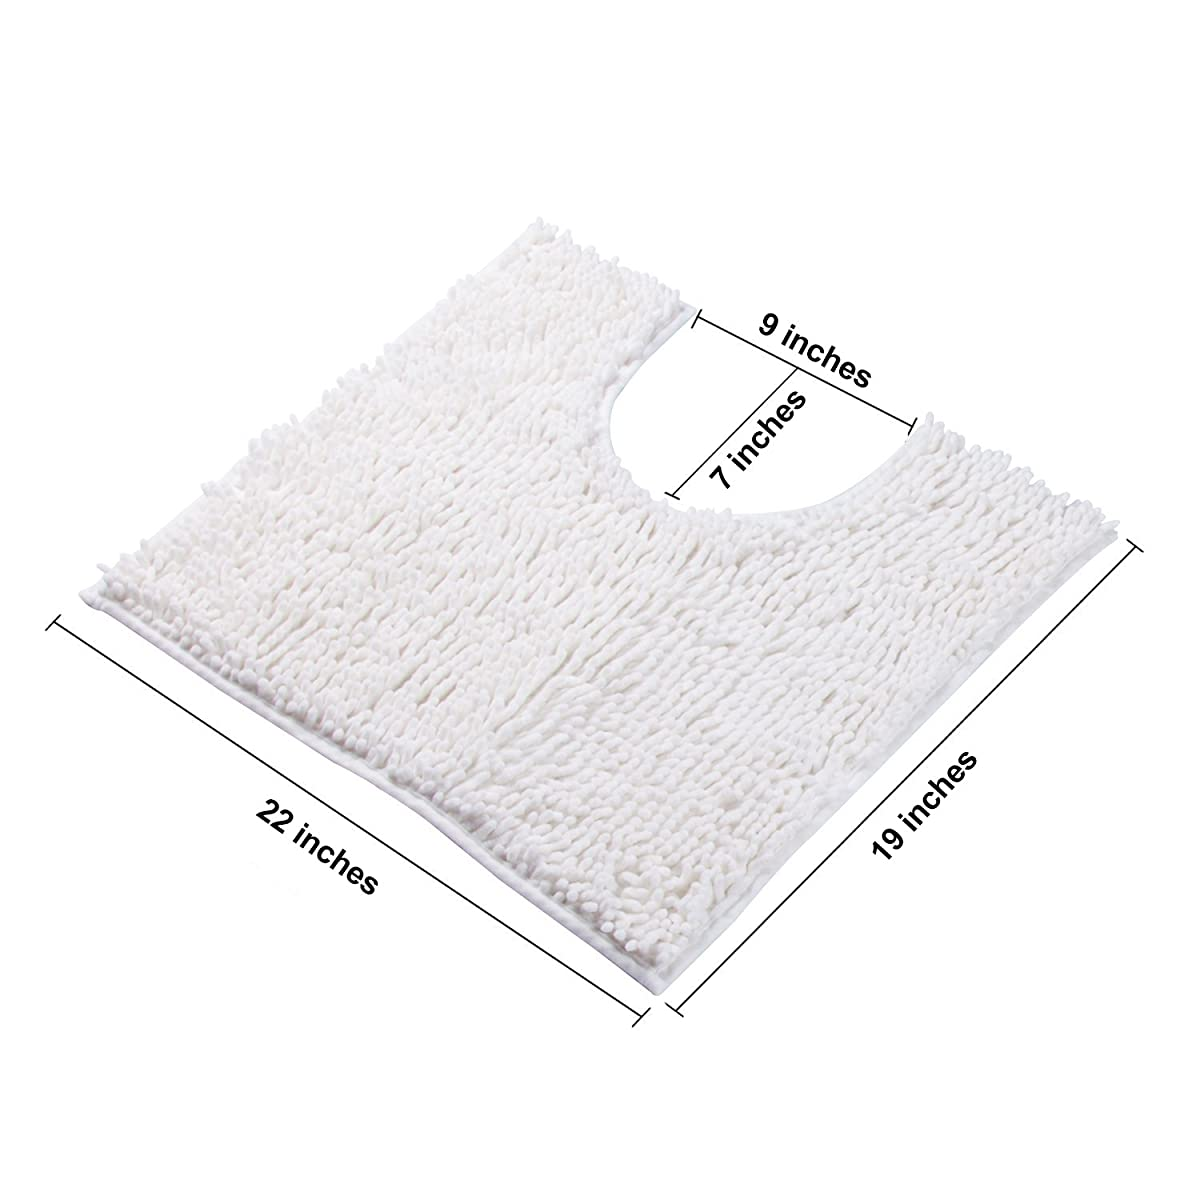 VDOMUS Microfiber Bathroom Contour Rugs Combo, Set of Soft Shaggy Non Slip Bath Shower Mat and U-shaped Toilet Floor Rug (White)